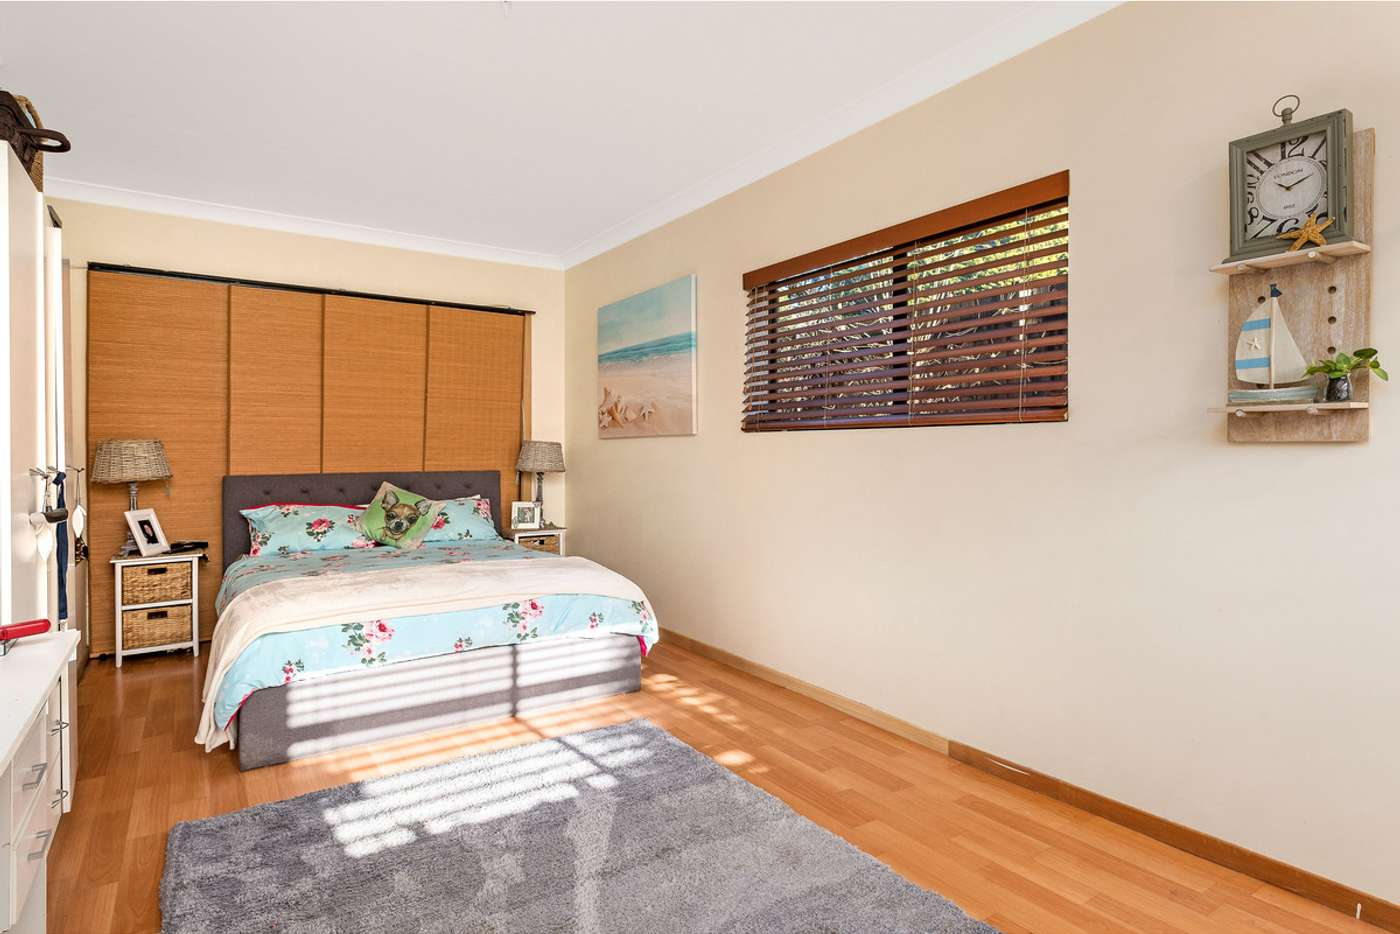 Sixth view of Homely house listing, 34 Megalong Crescent, Campbelltown NSW 2560